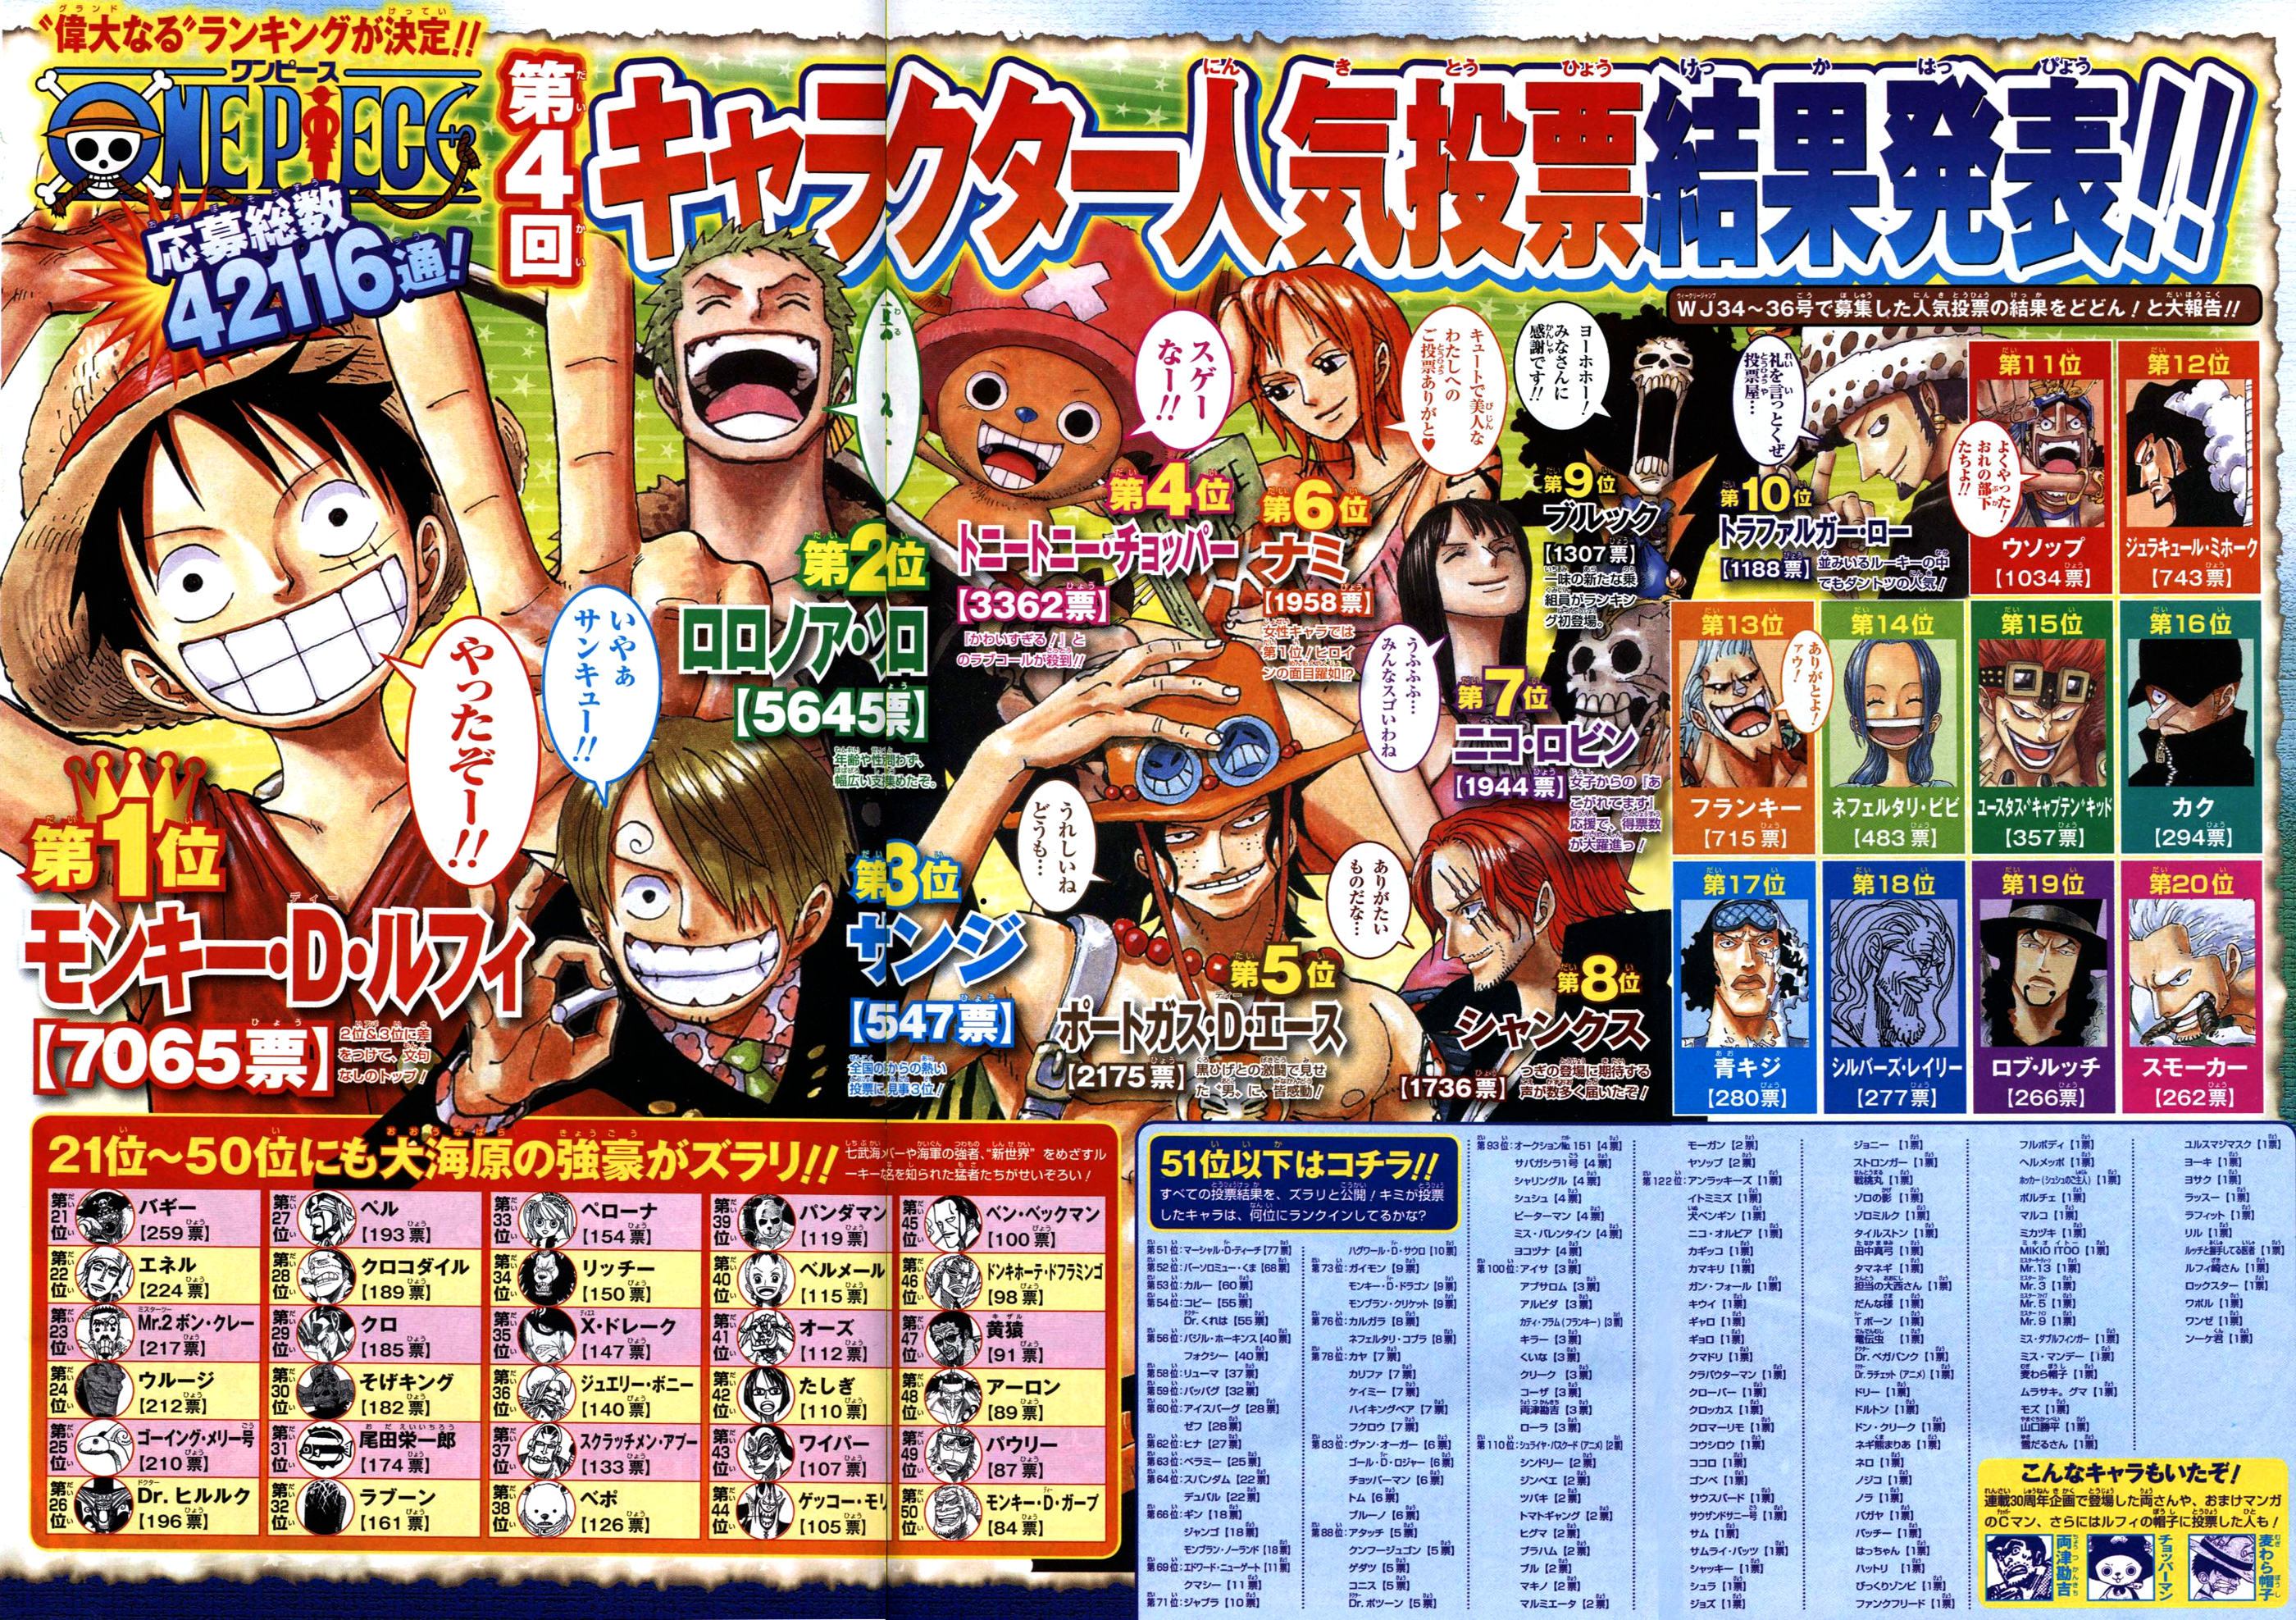 Anime Characters Popularity Poll : One punch man character popularity poll result manga